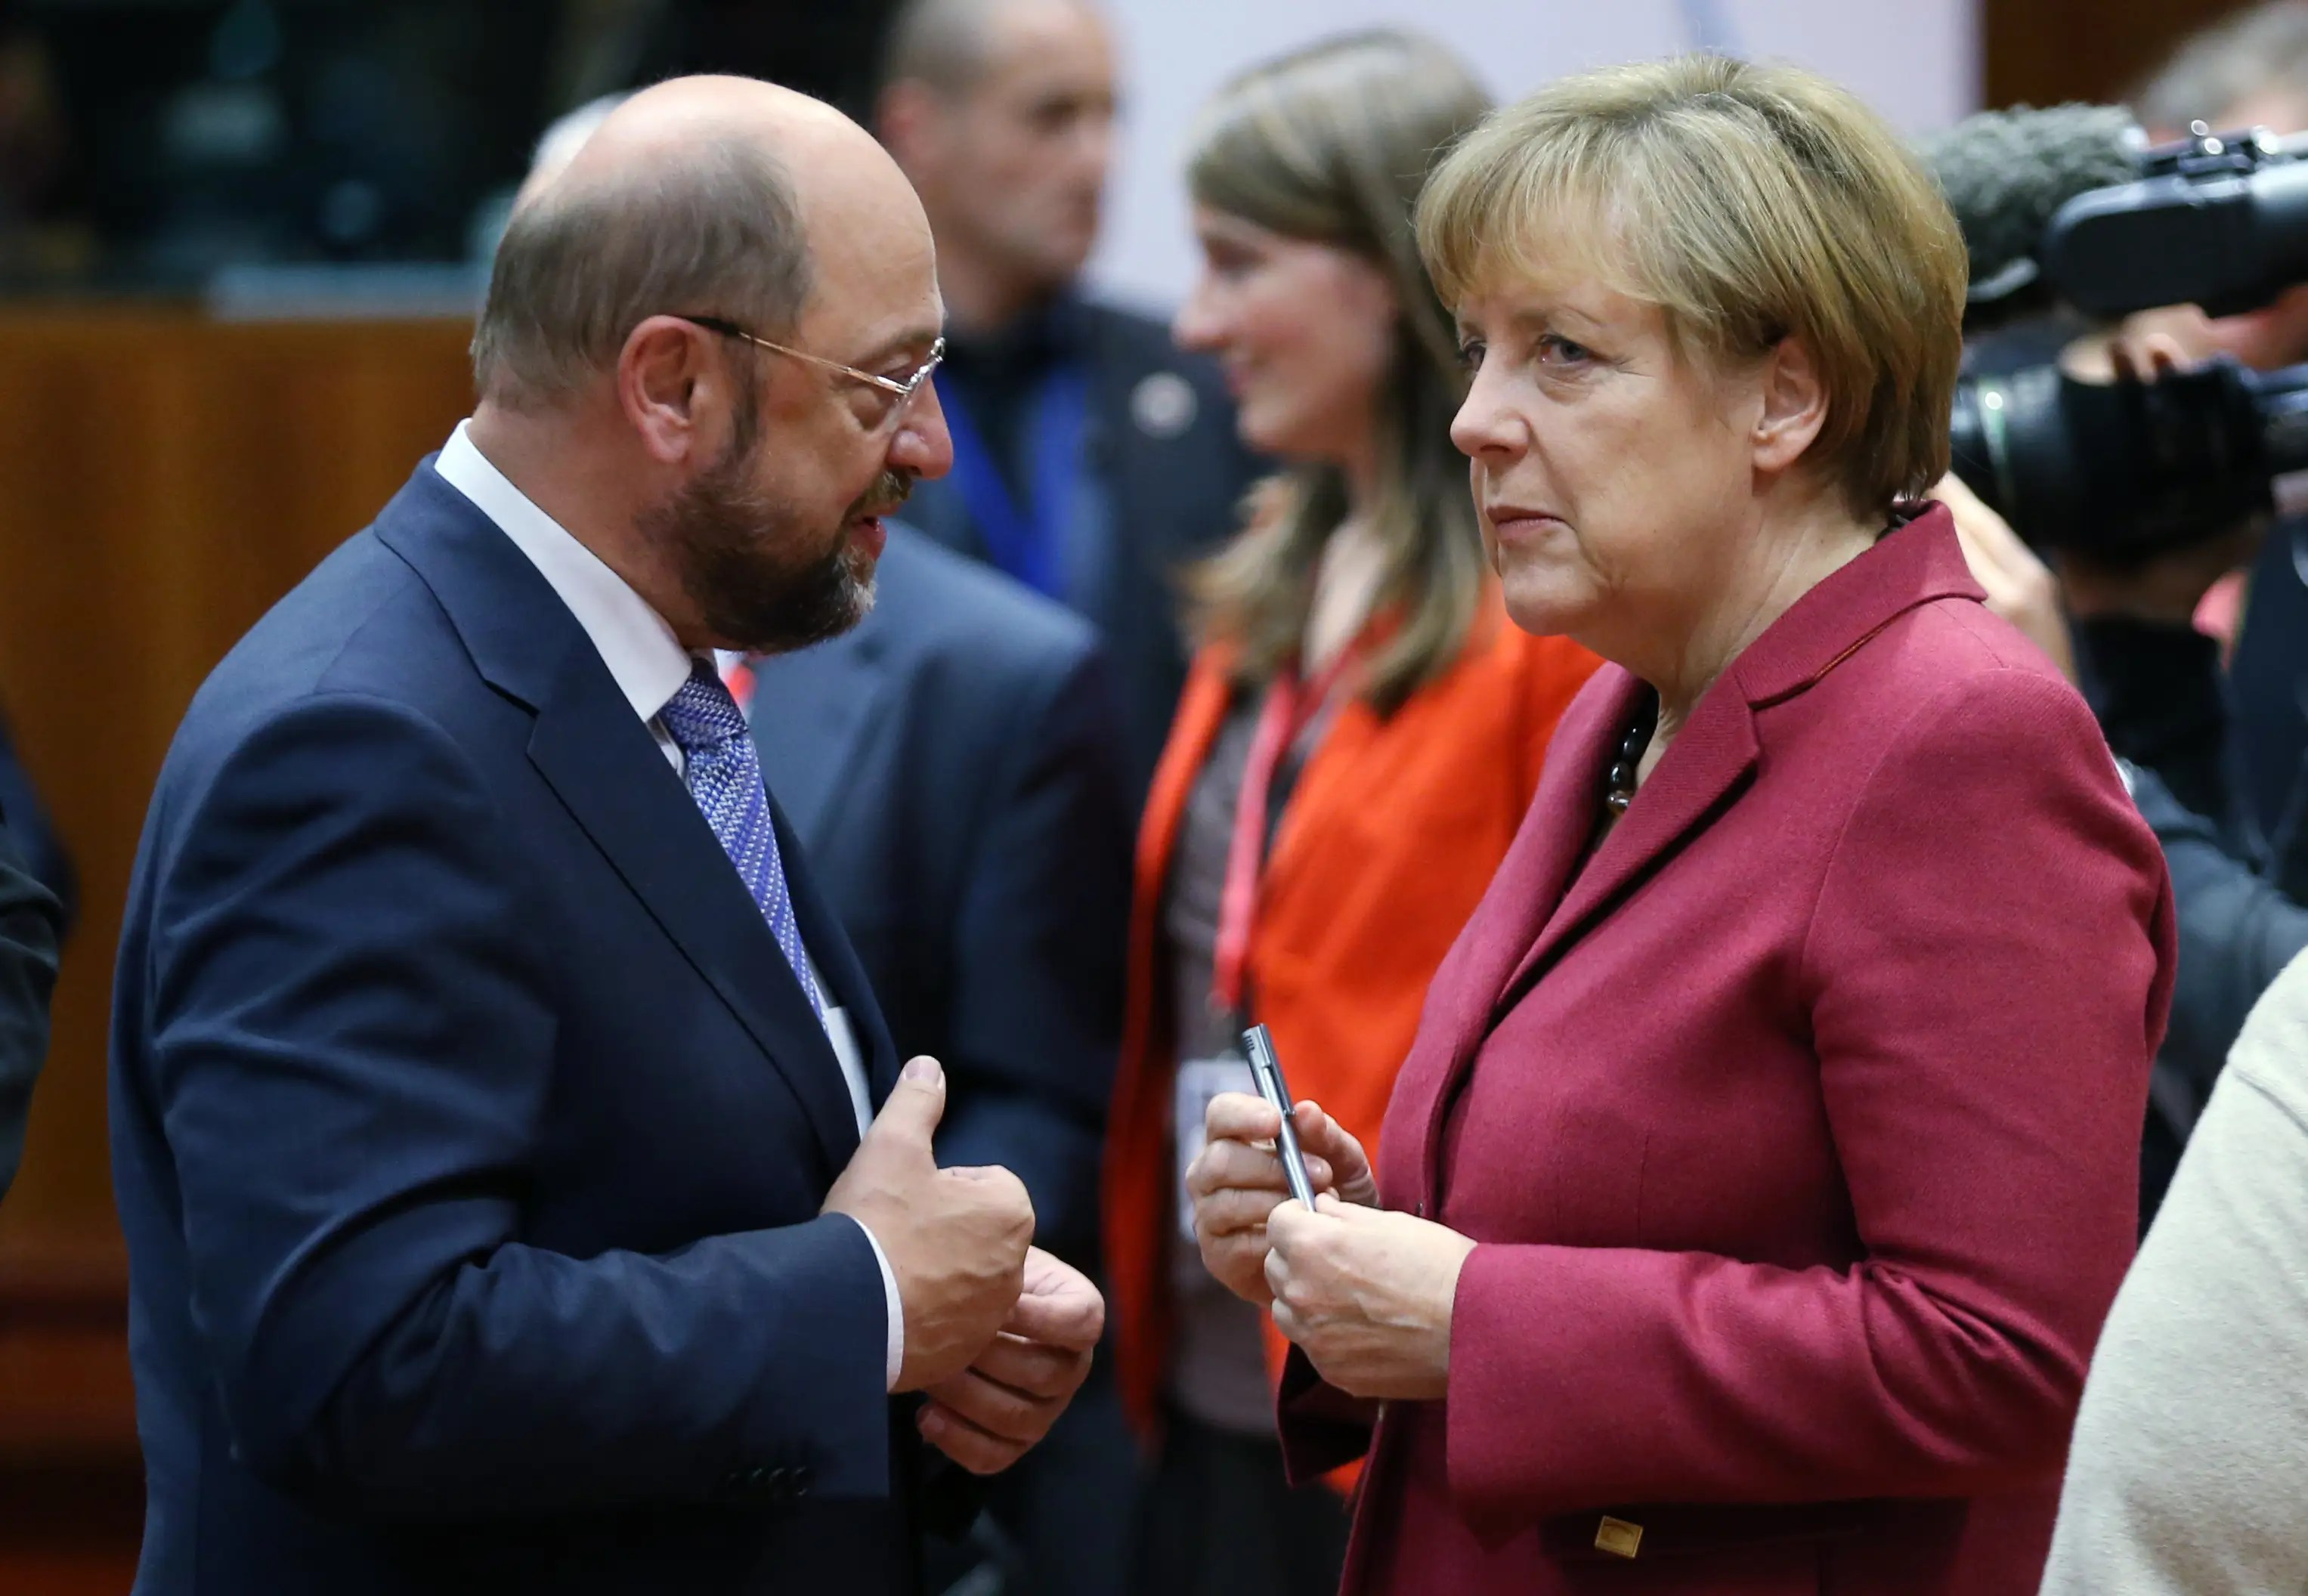 Image result for Martin Schulz and angela merkel, photos